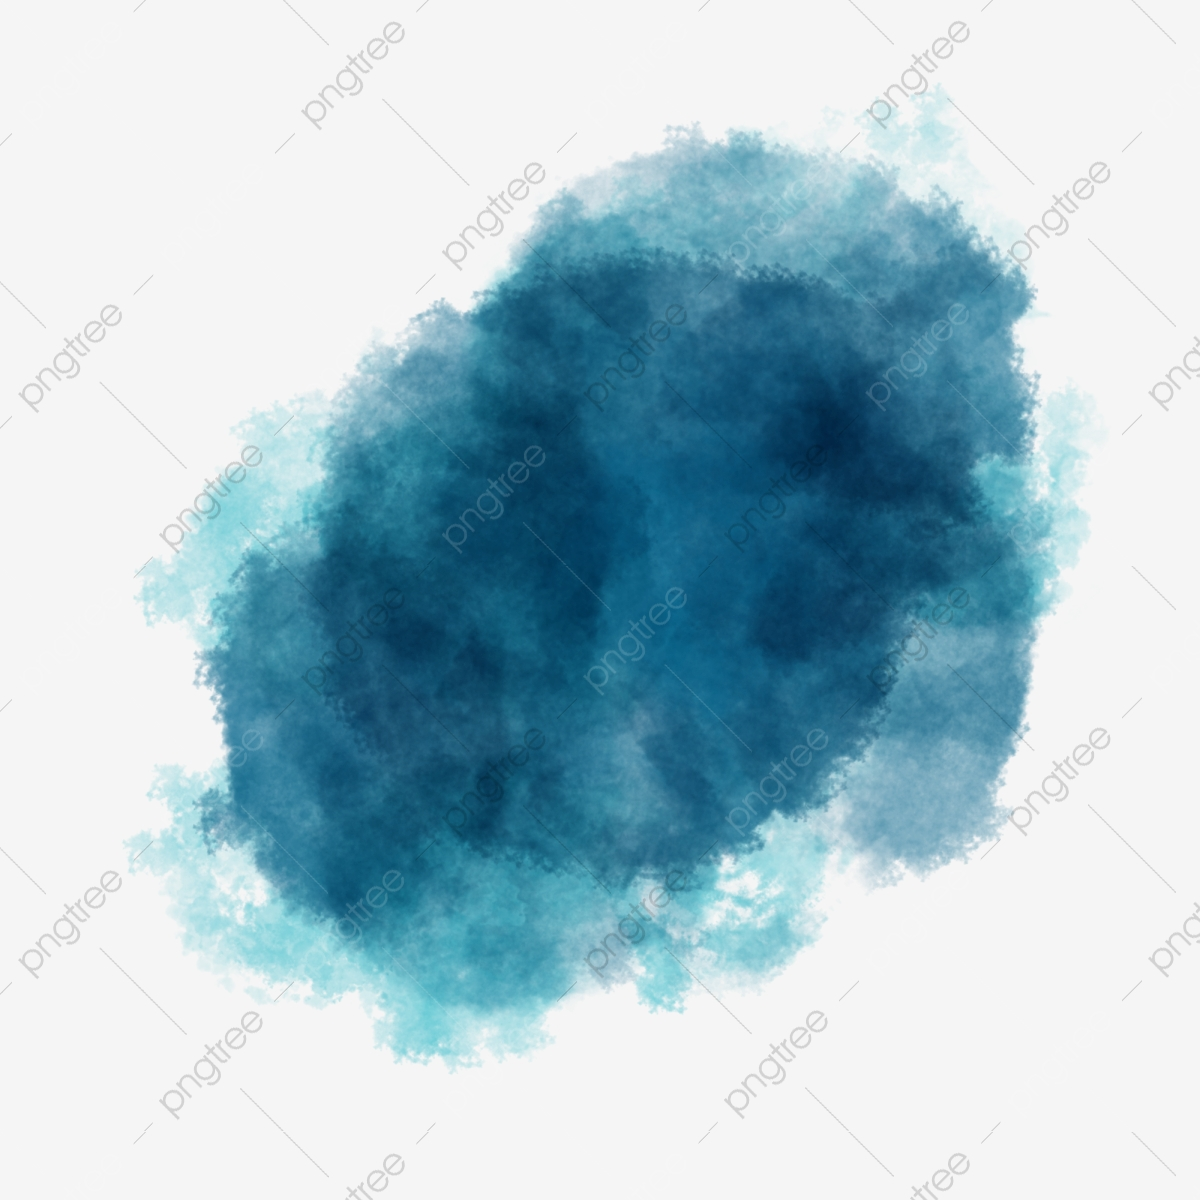 Watercolor Brush Png Images Vector And Psd Files Free Download On Pngtree